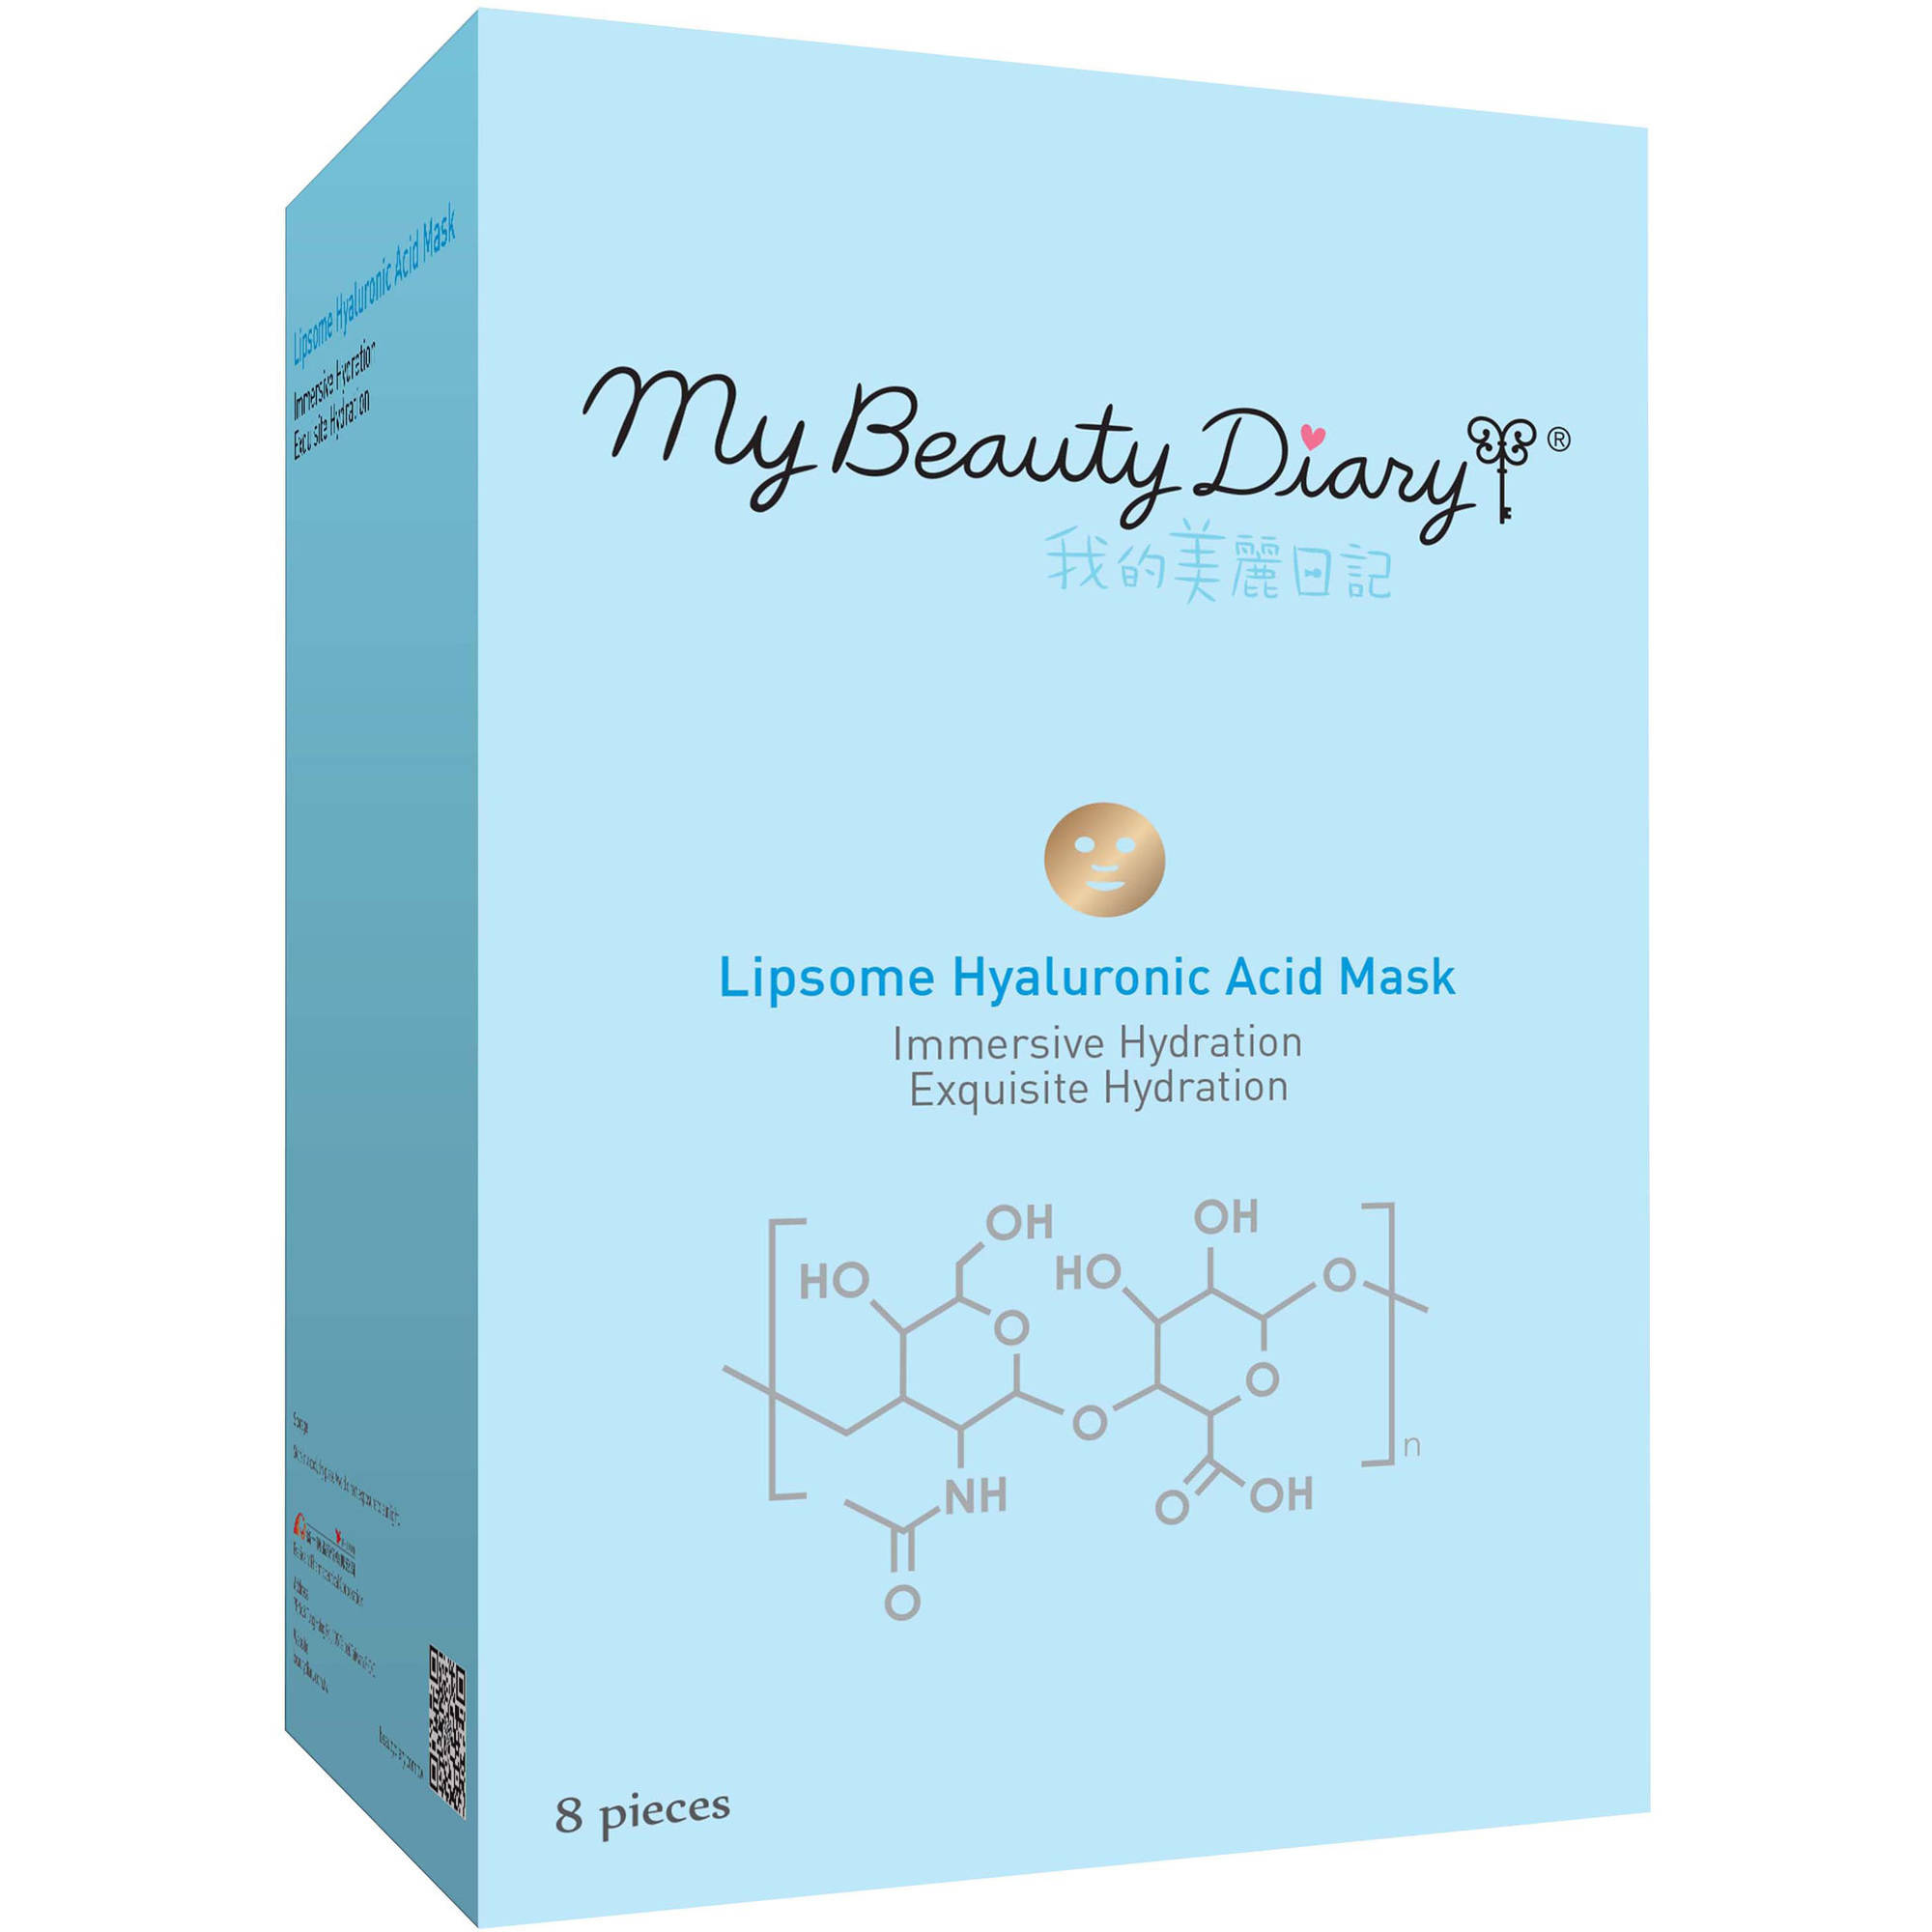 My Beauty Diary Lipsome Hyaluronic Acid Mask, 10 count